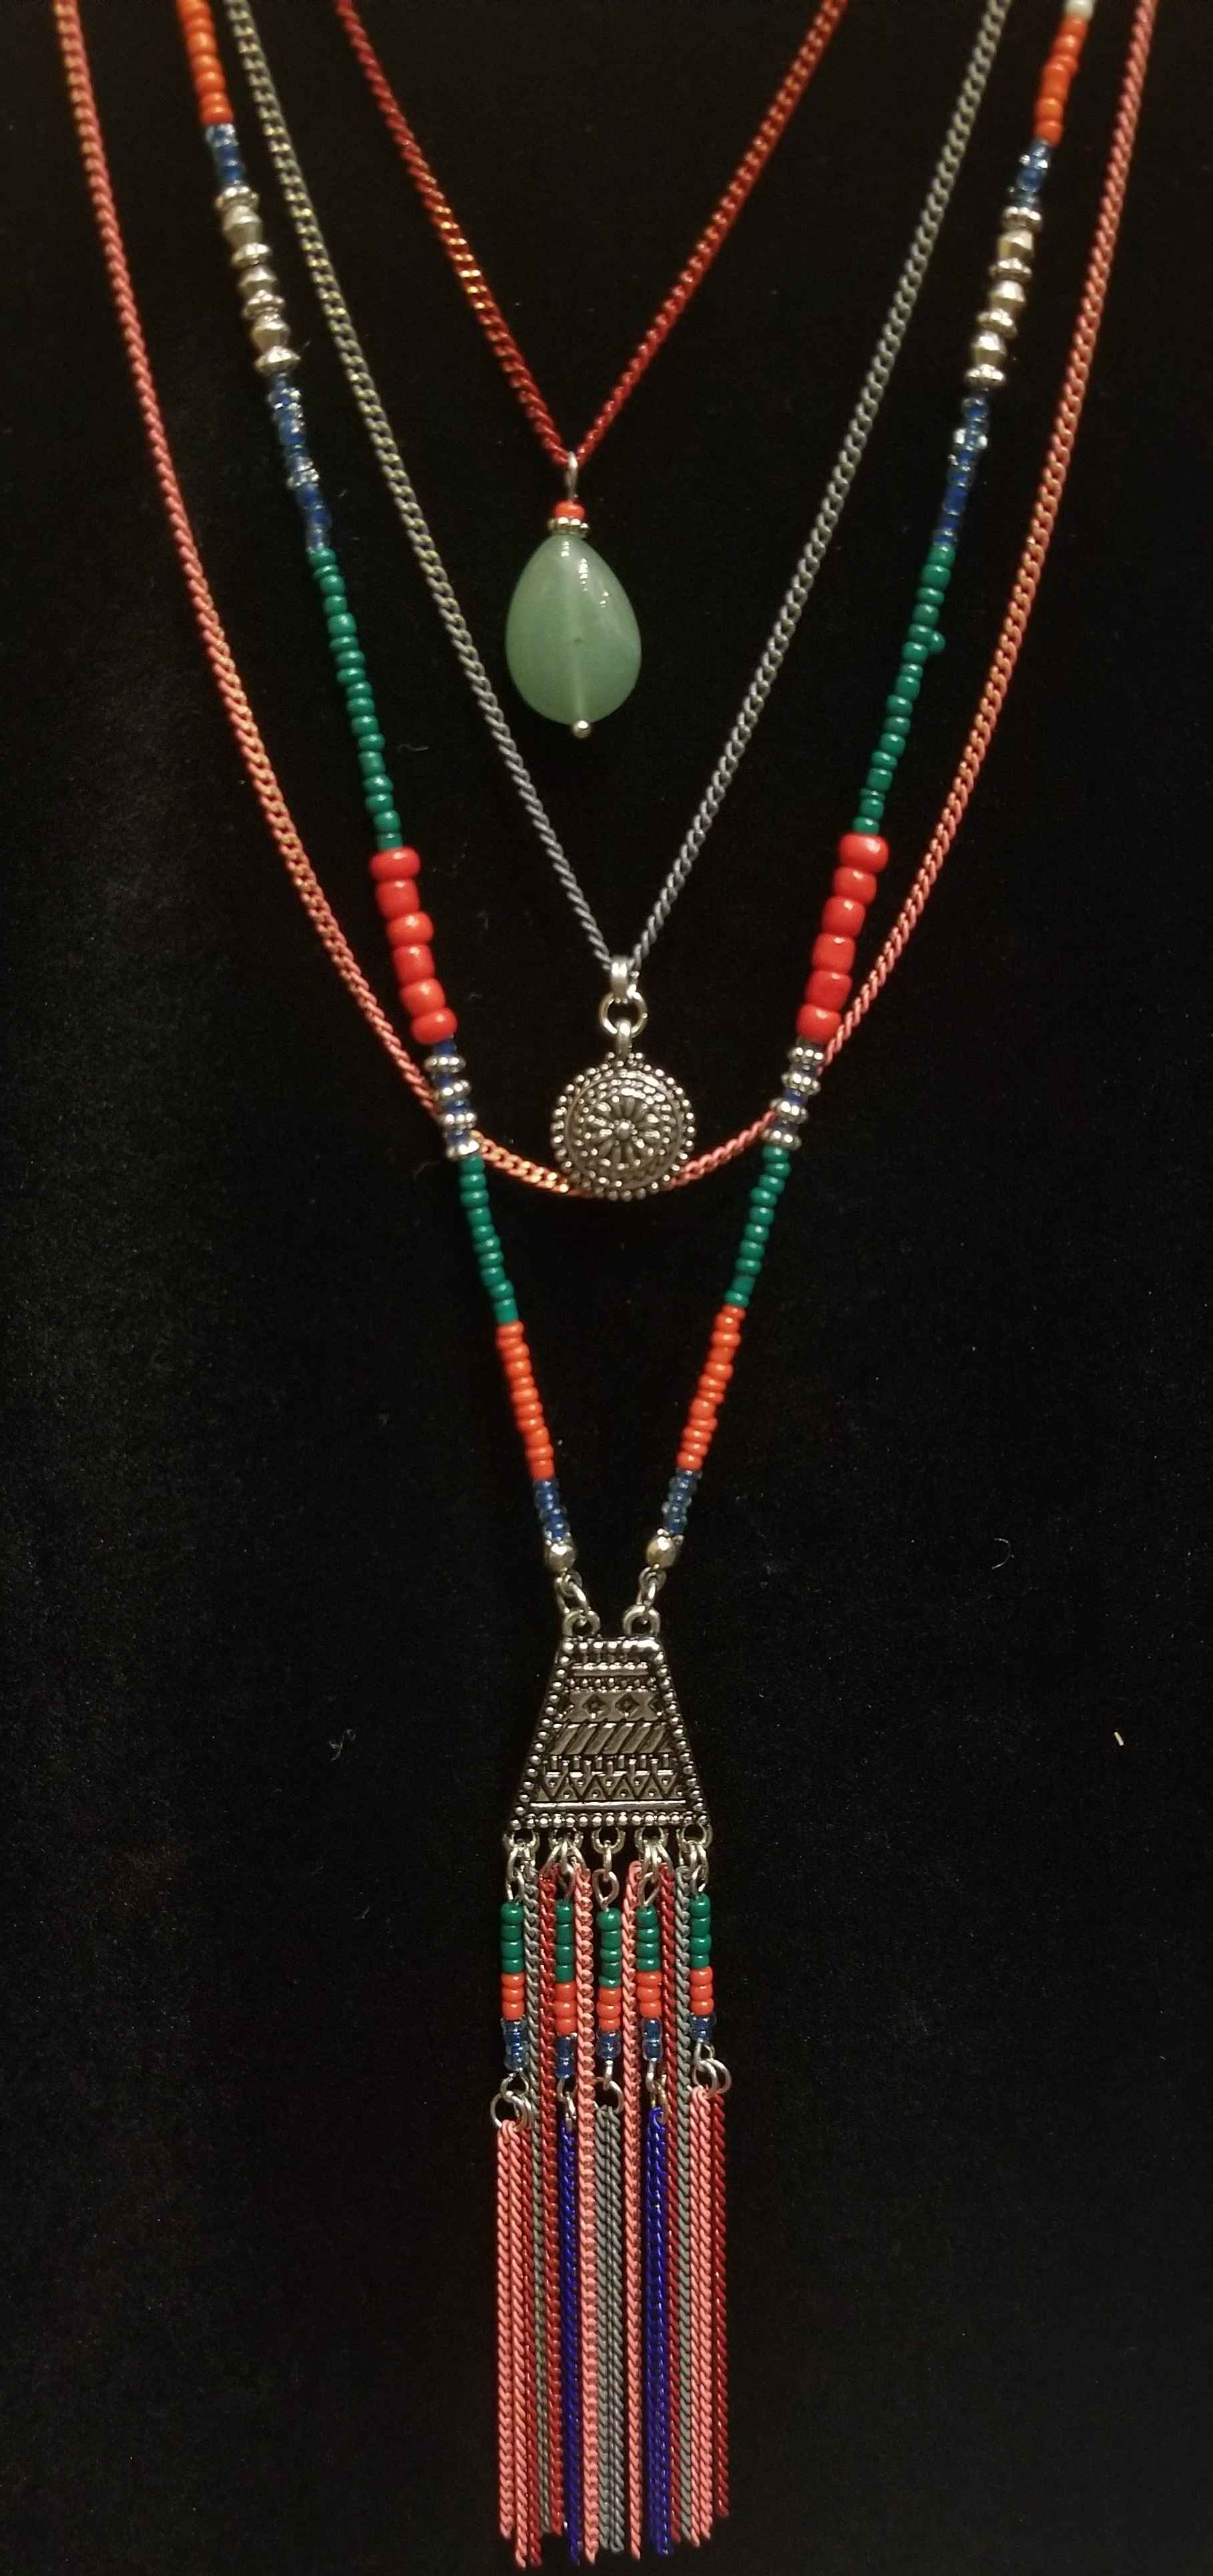 Necklace - Mixed Bead... by  Gallery Pieces - Masterpiece Online